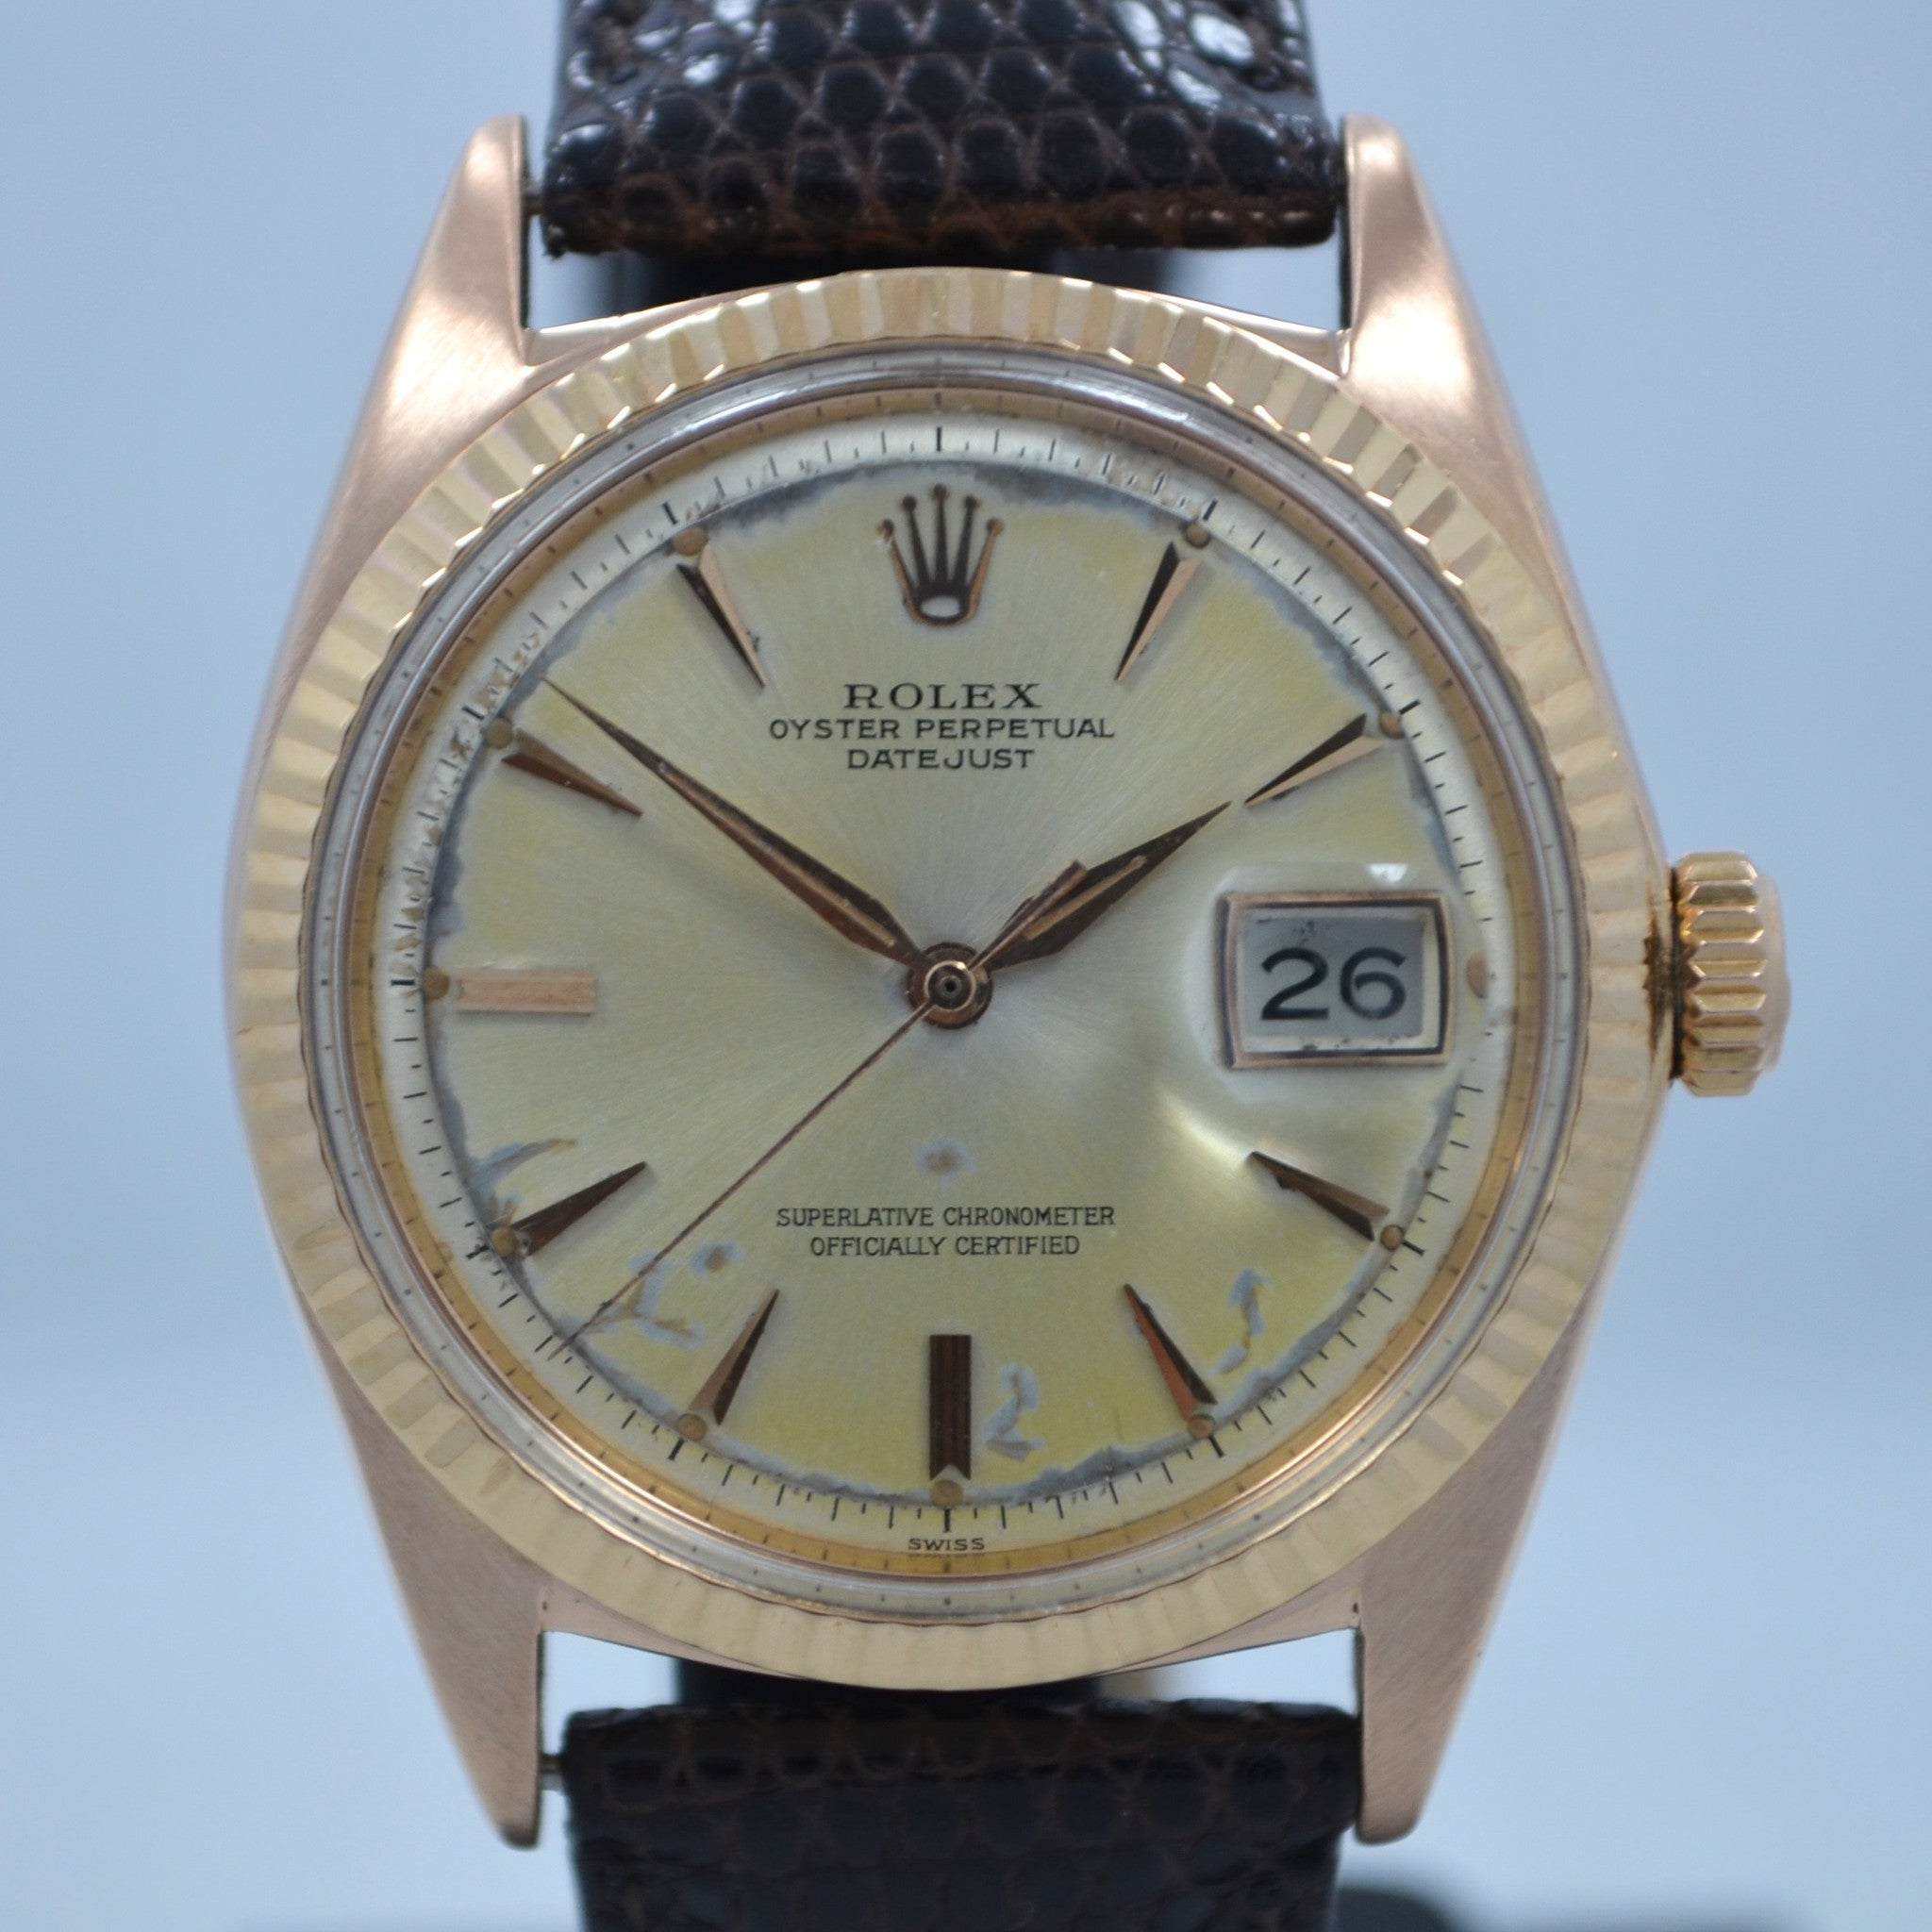 Vintage Rolex Datejust 1601 Oyster Perpetual 18K Rose Gold 1959 Wristwatch